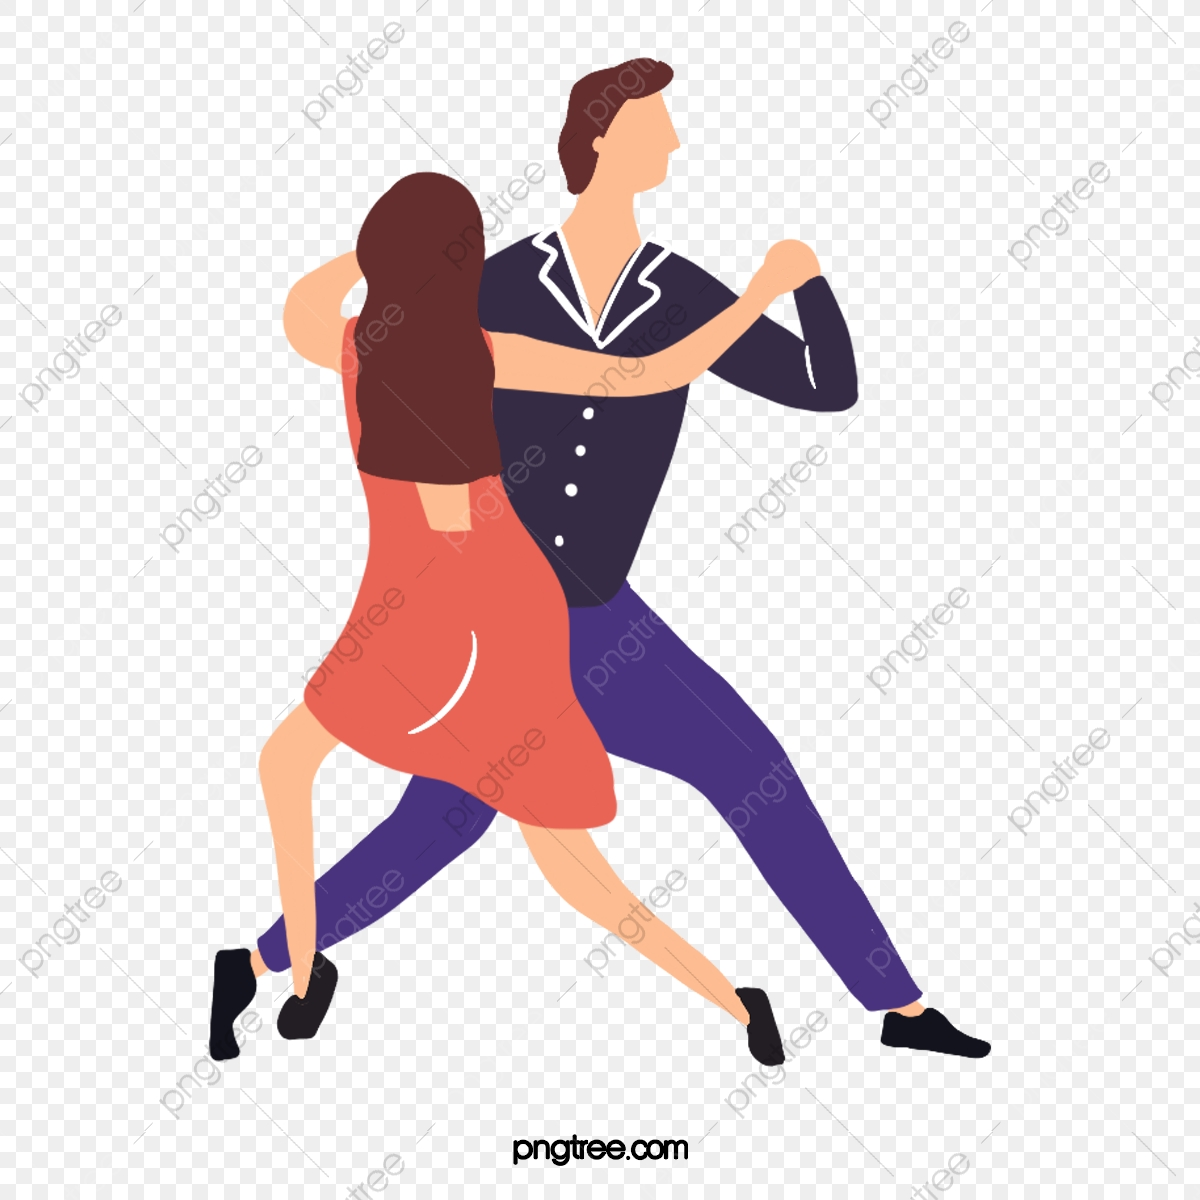 Hand Drawn Cartoon Male And Female Ballroom Dancing Illustration Dance Ballroom Dance Skirt Png Transparent Clipart Image And Psd File For Free Download